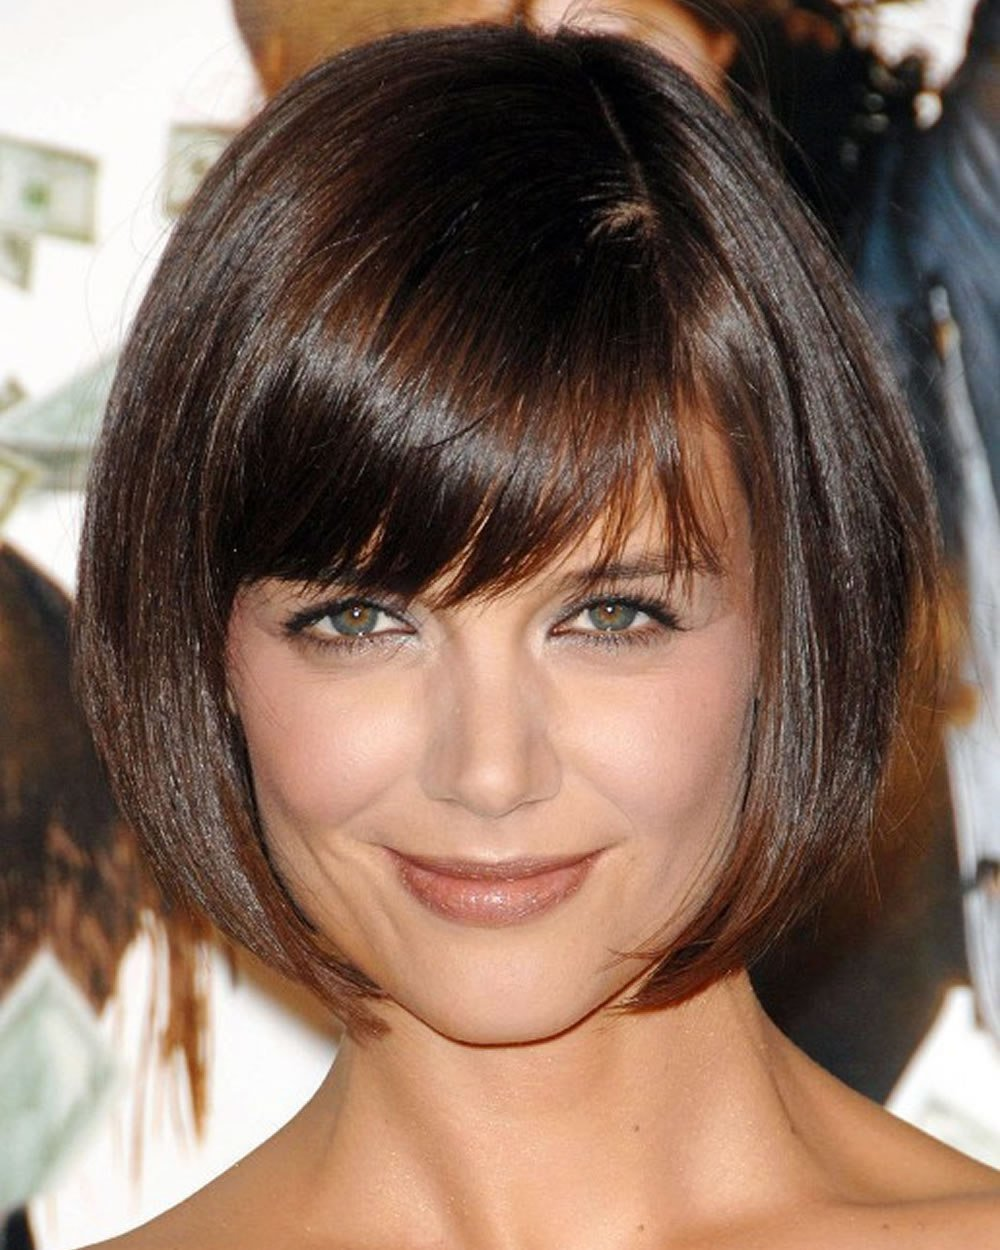 New 31 Chic Short Haircut Ideas 2018 Pixie Bob Hair Ideas With Pictures